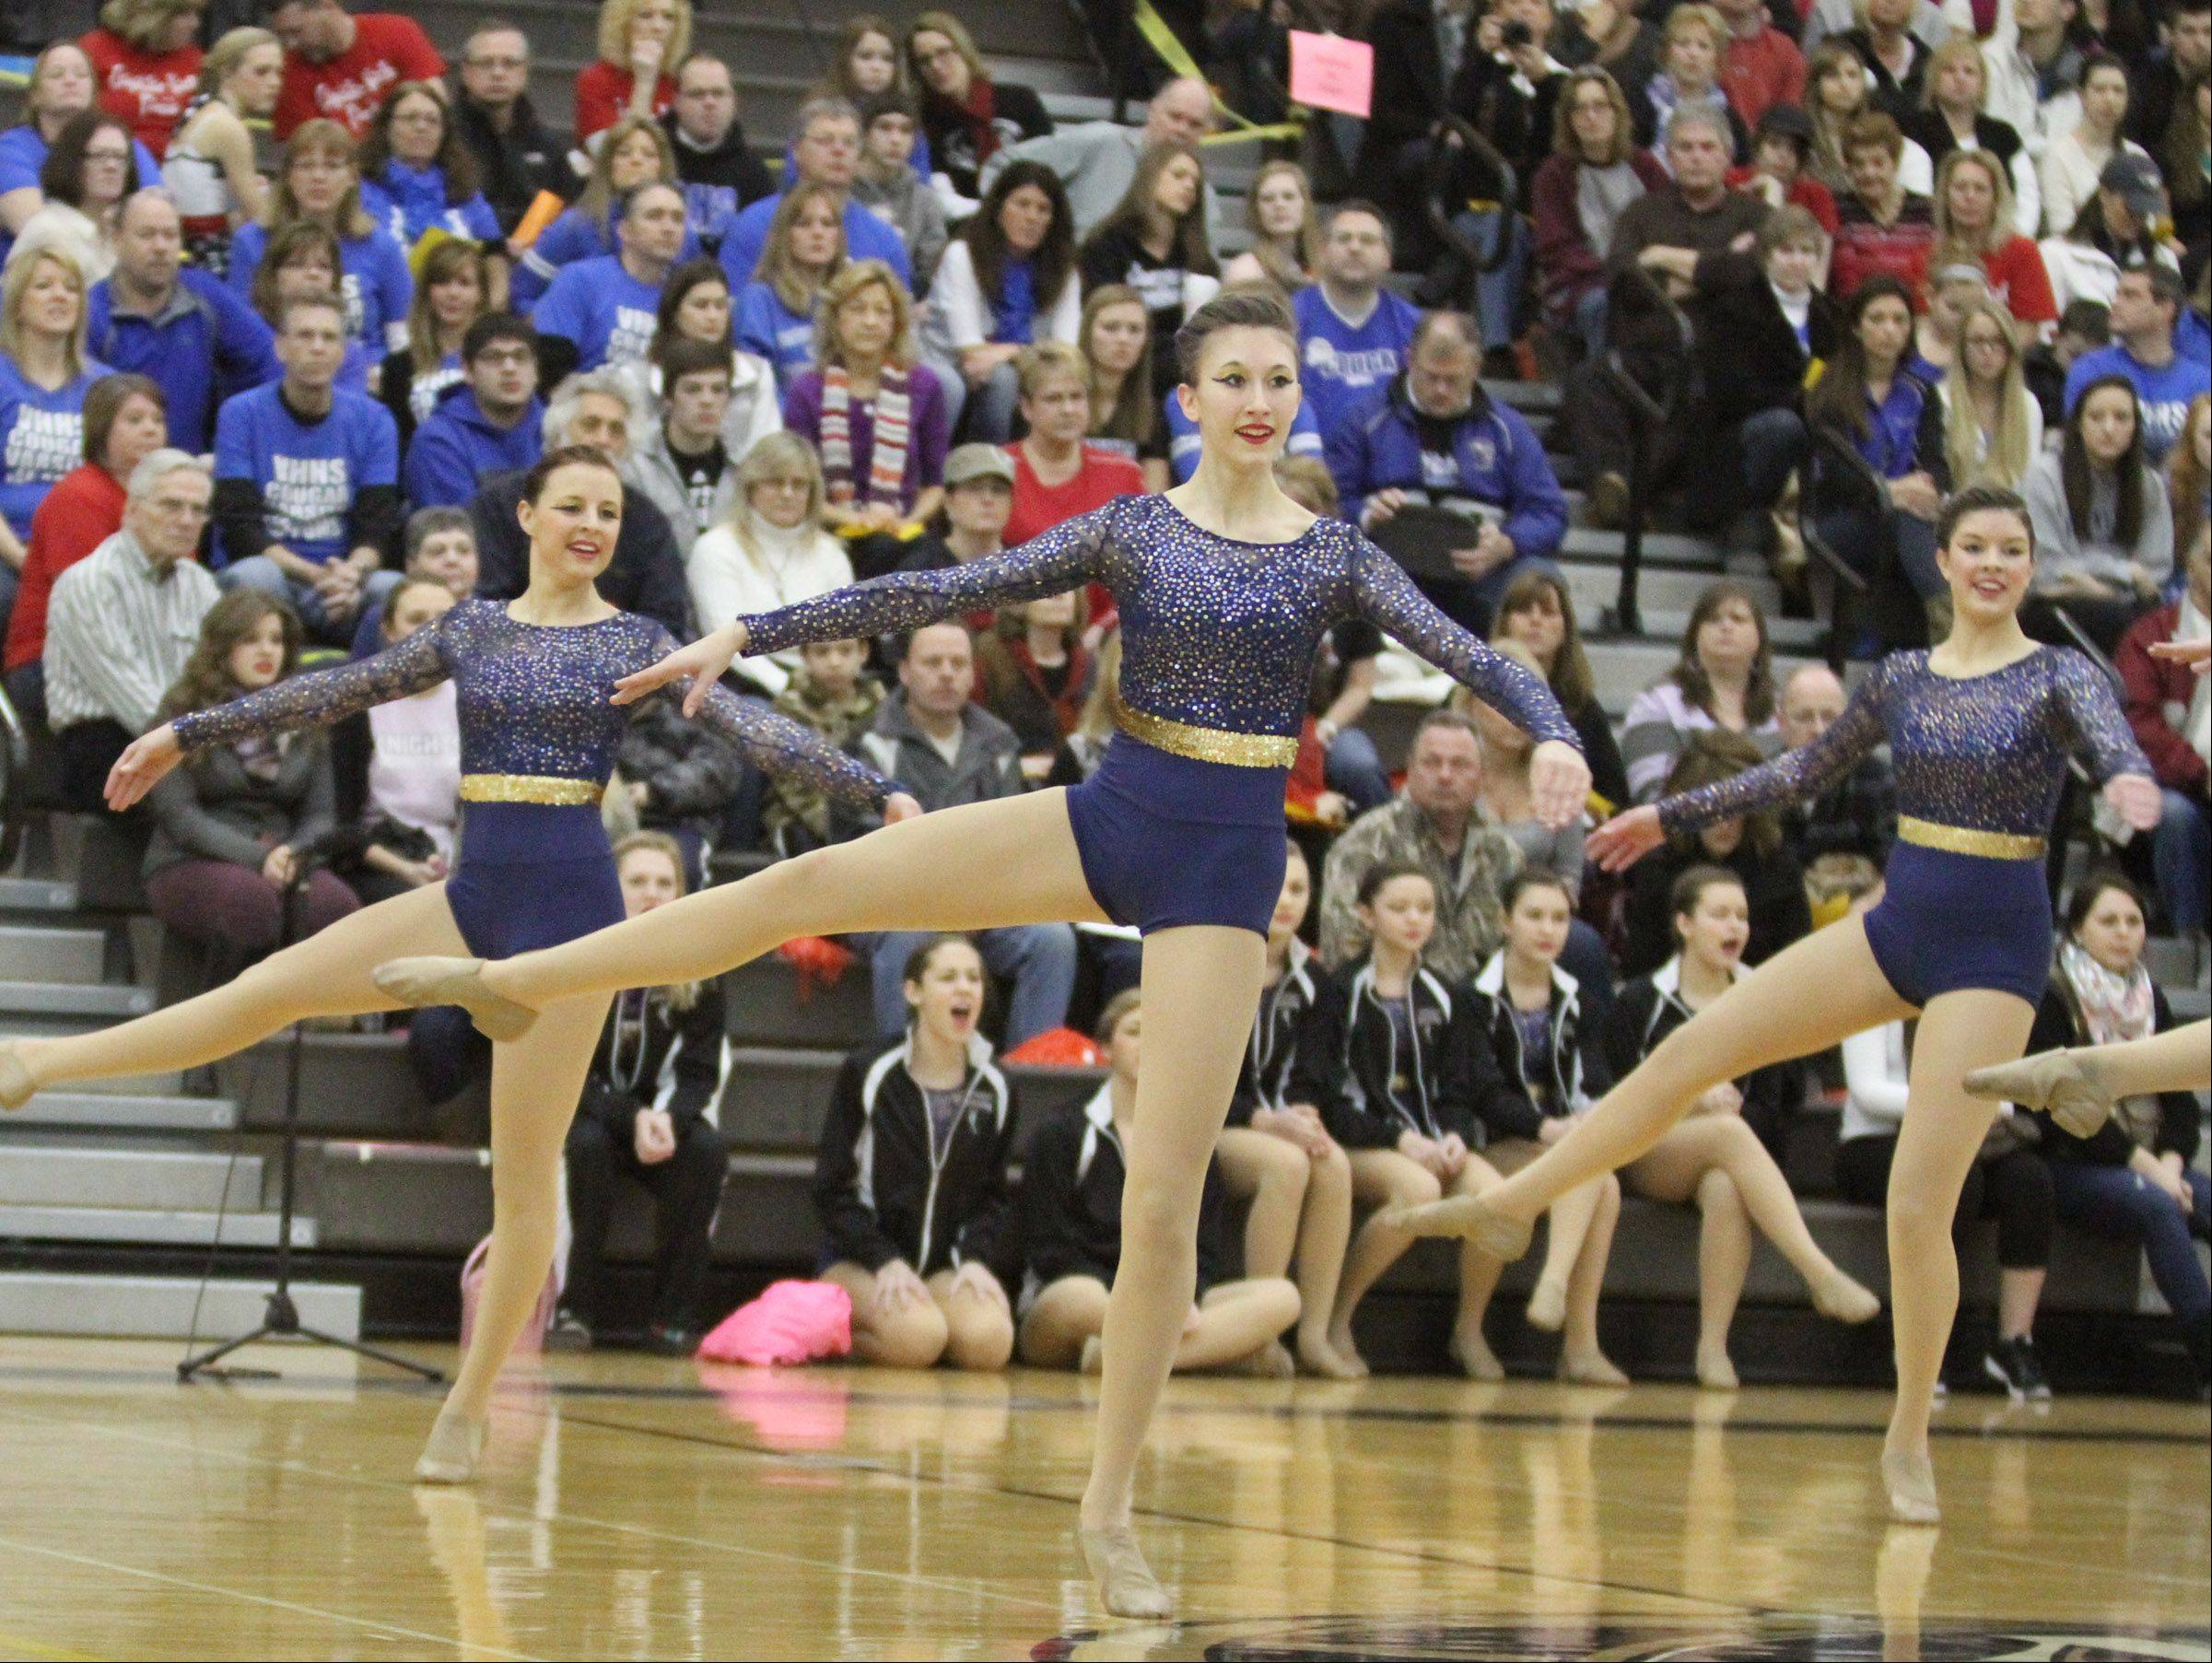 Antioch Community High School dance team competes at the IHSA competitive dance sectional in Grayslake on Saturday.